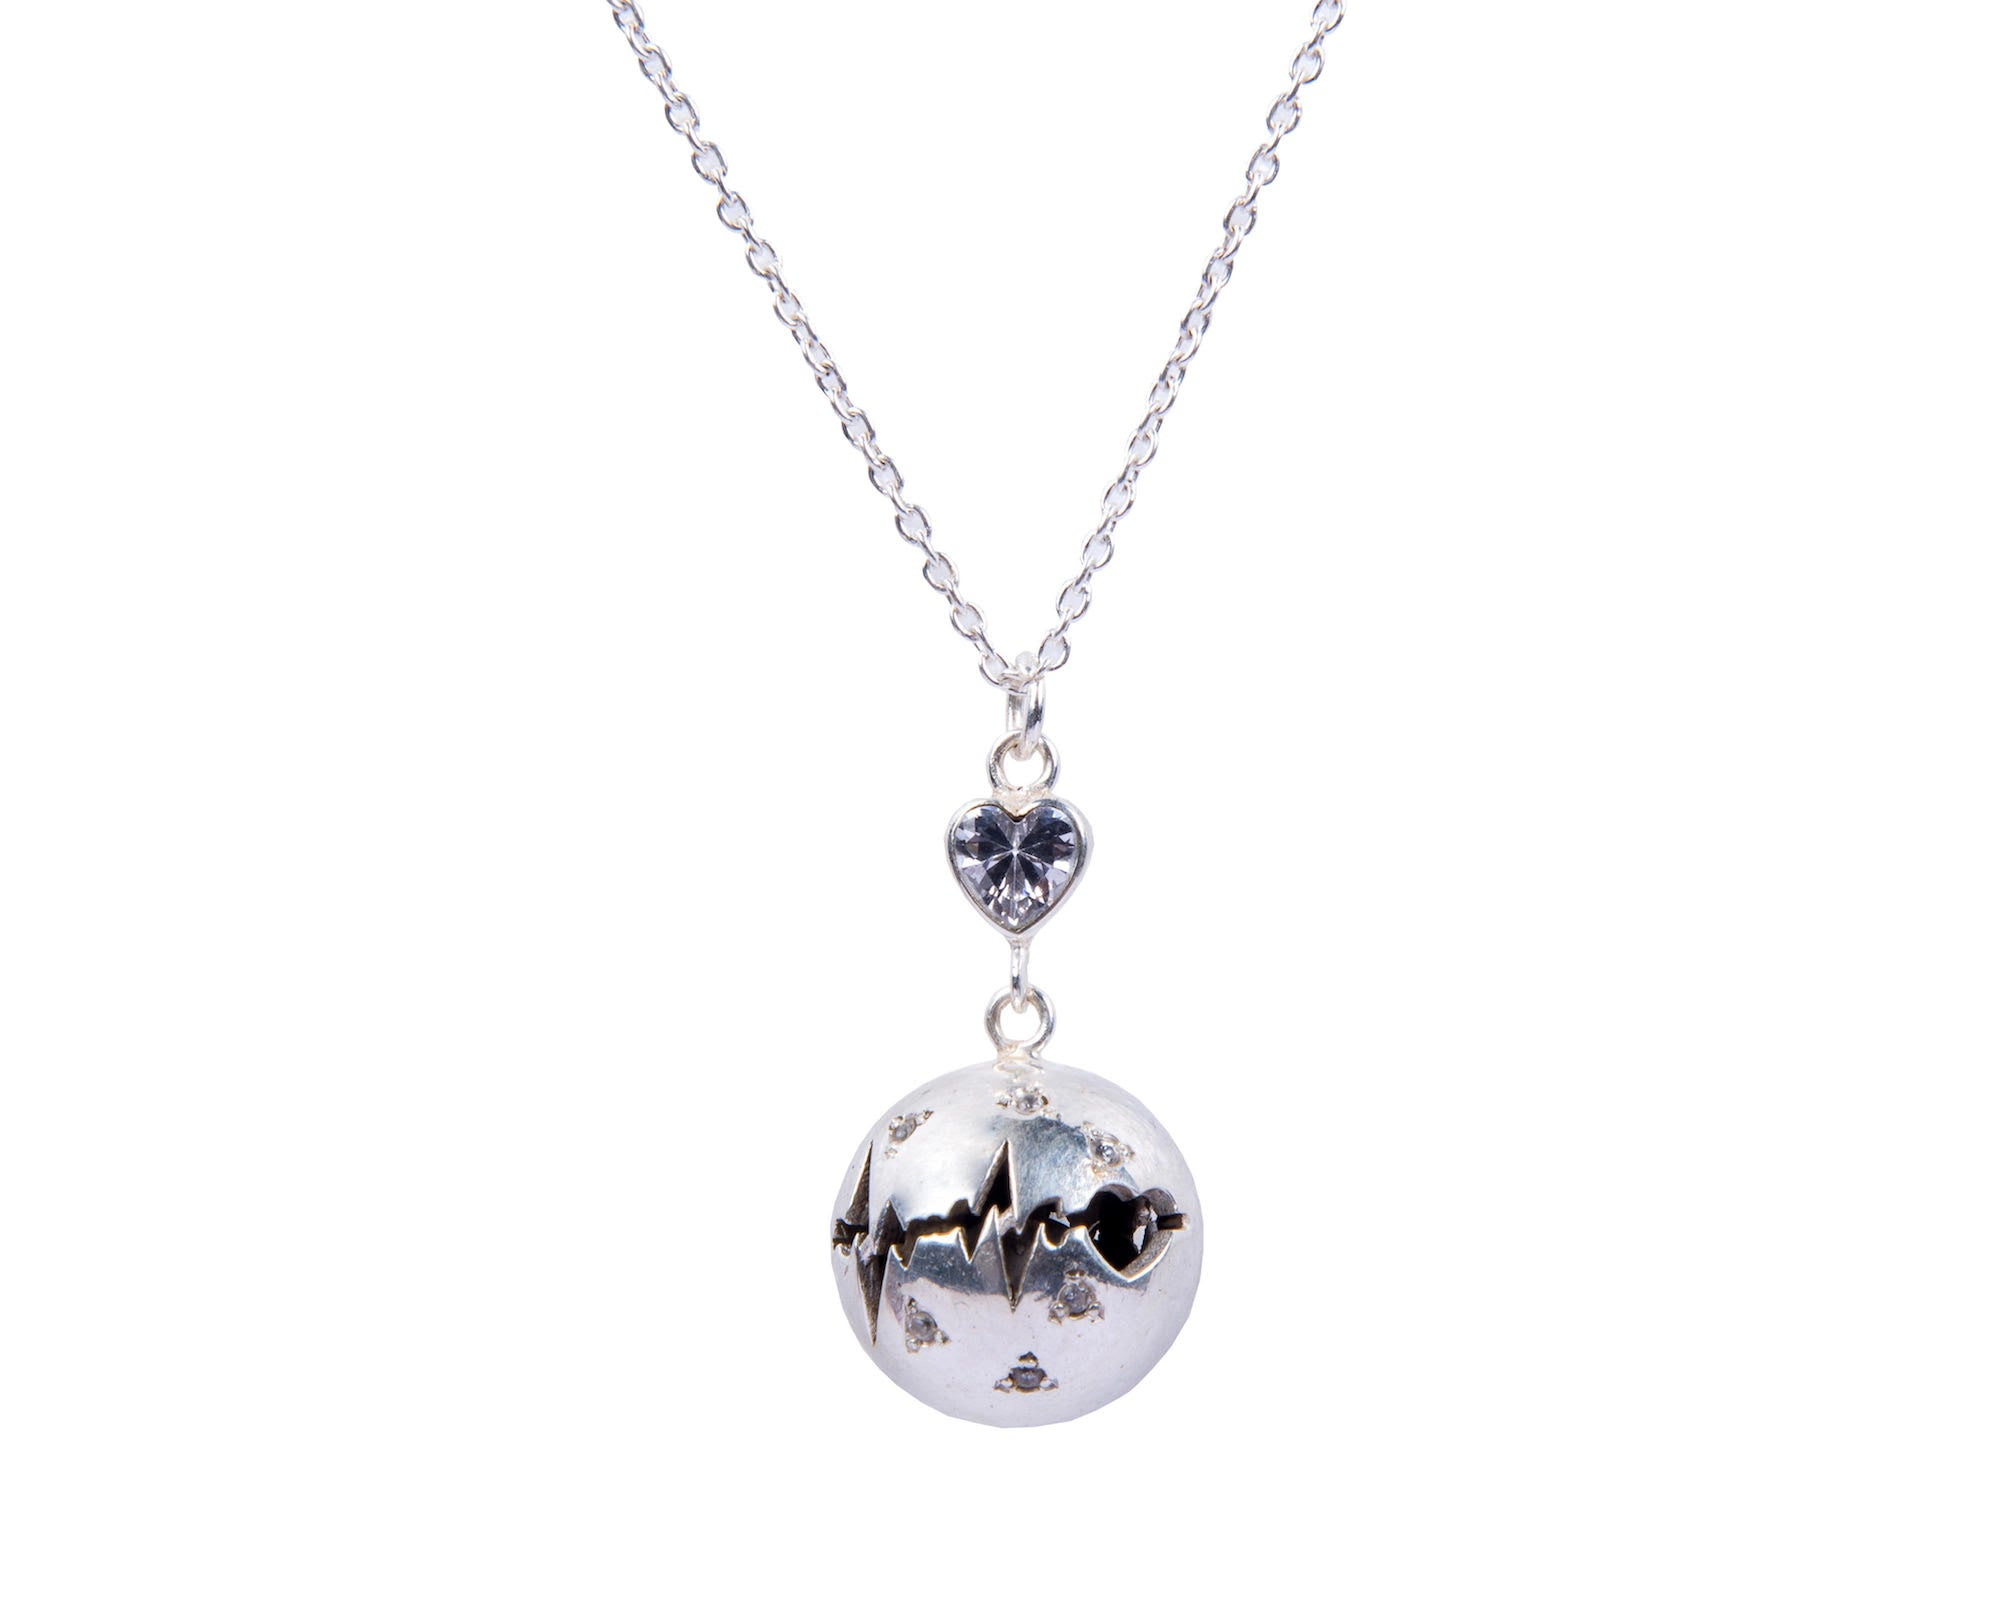 Harmony ball pendant with heart & heartbeat etching